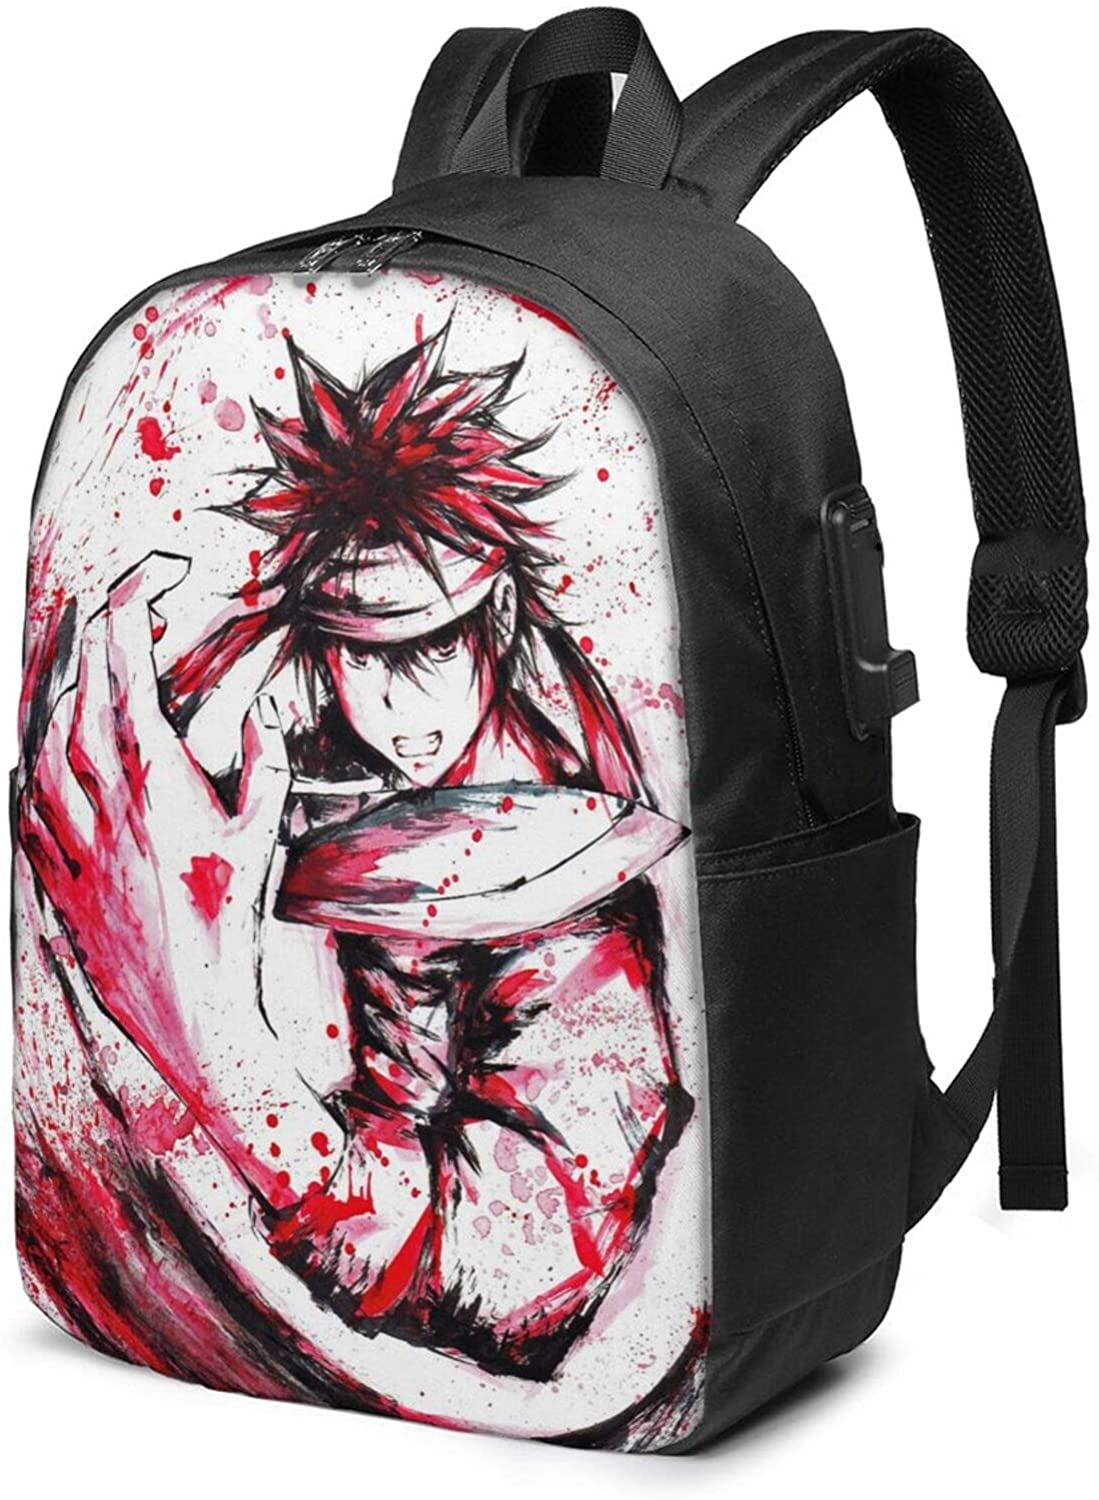 Food Wars School Backpack 17-Inch Bag with USB Charging Port & Headphone Port